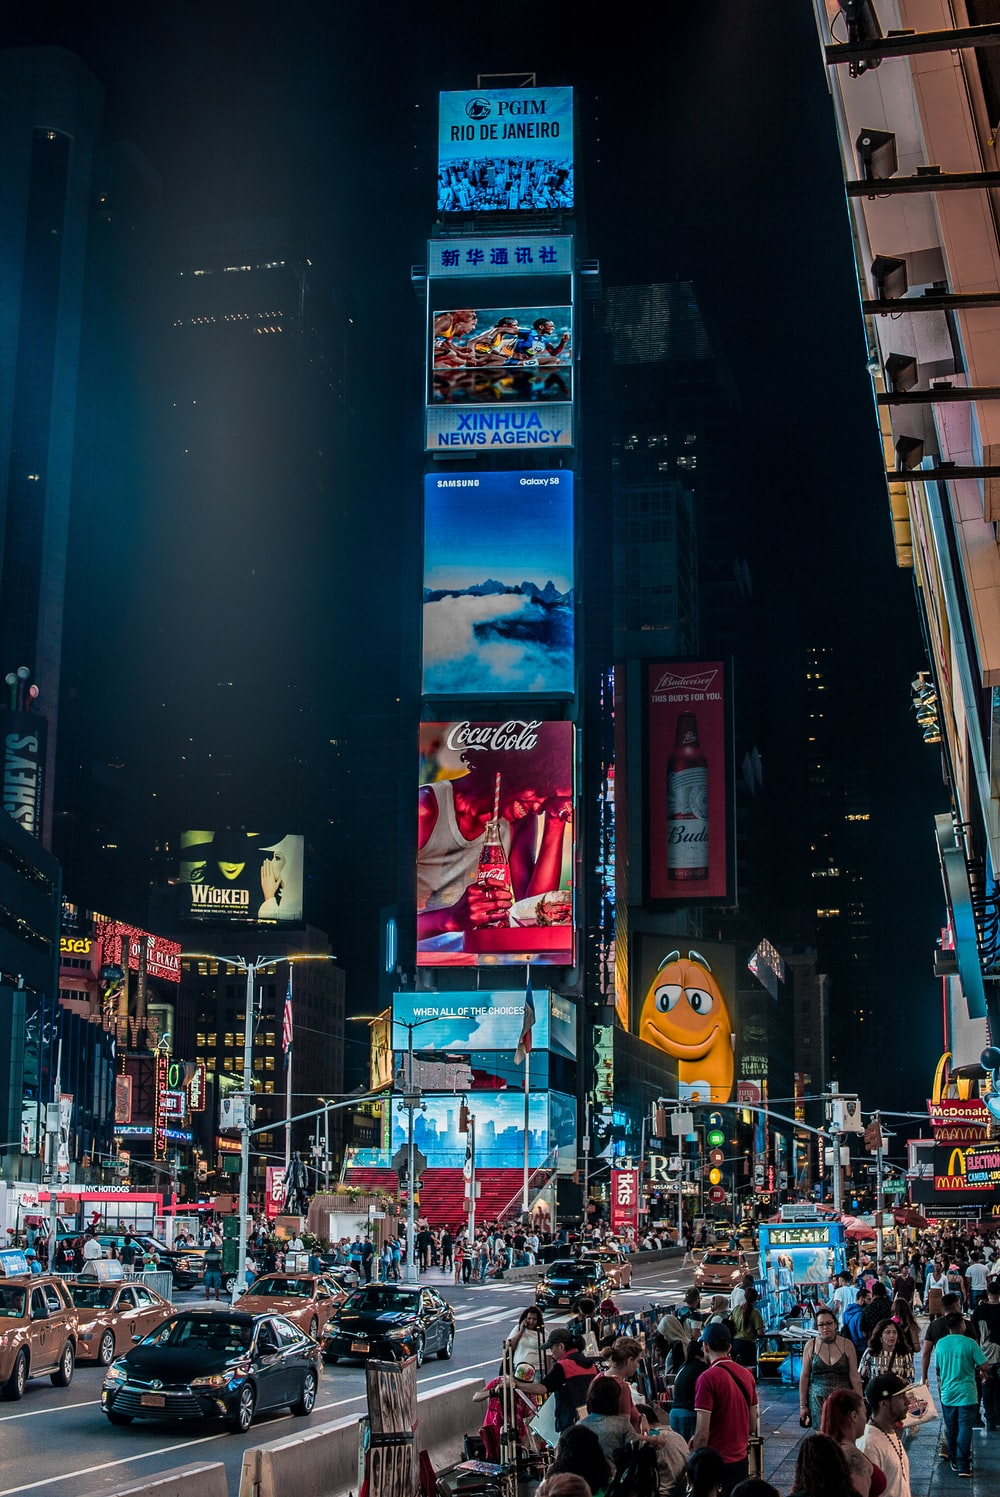 people at Time Square, New York city at night